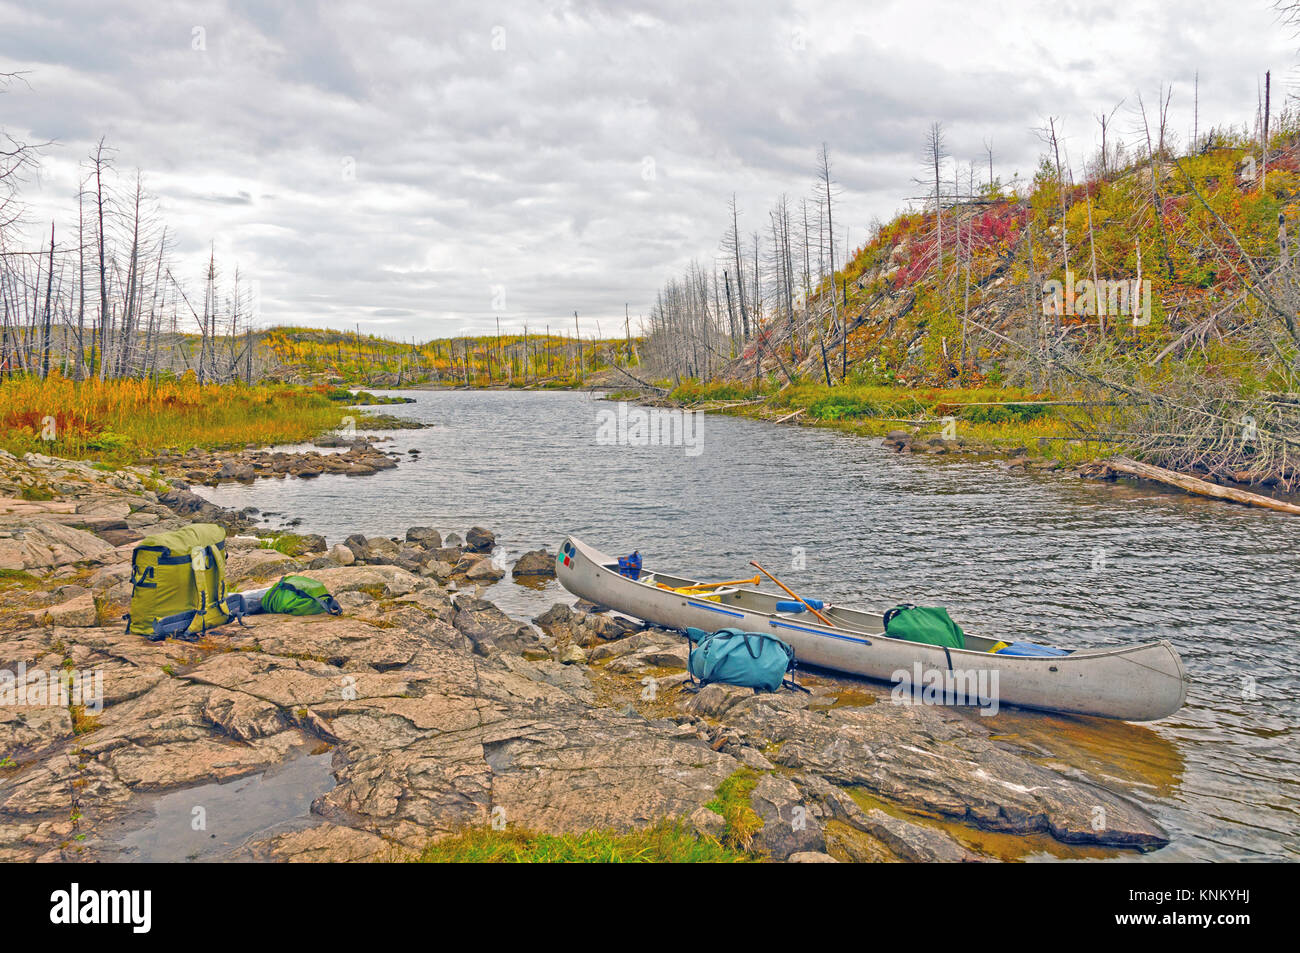 Portage onto Jasper Lake in the Boundary Waters in the Fall - Stock Image